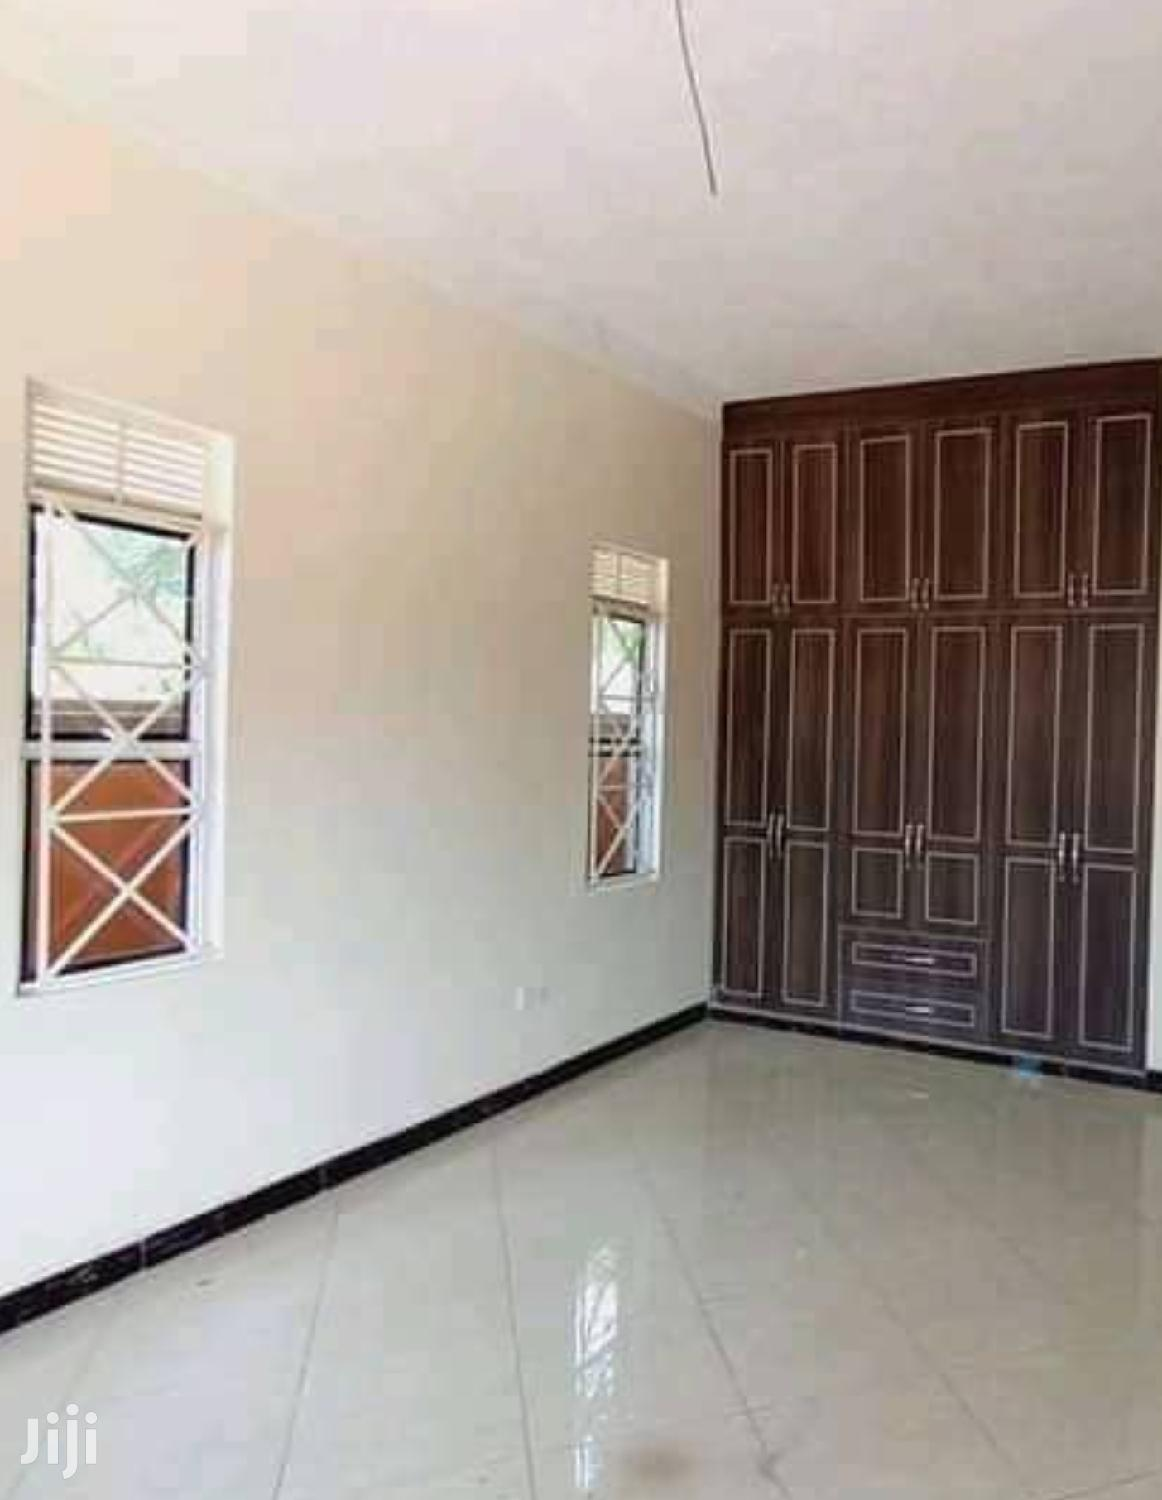 Mengo 5 Bedrooms Bungalow For Rent | Houses & Apartments For Rent for sale in Kampala, Central Region, Uganda